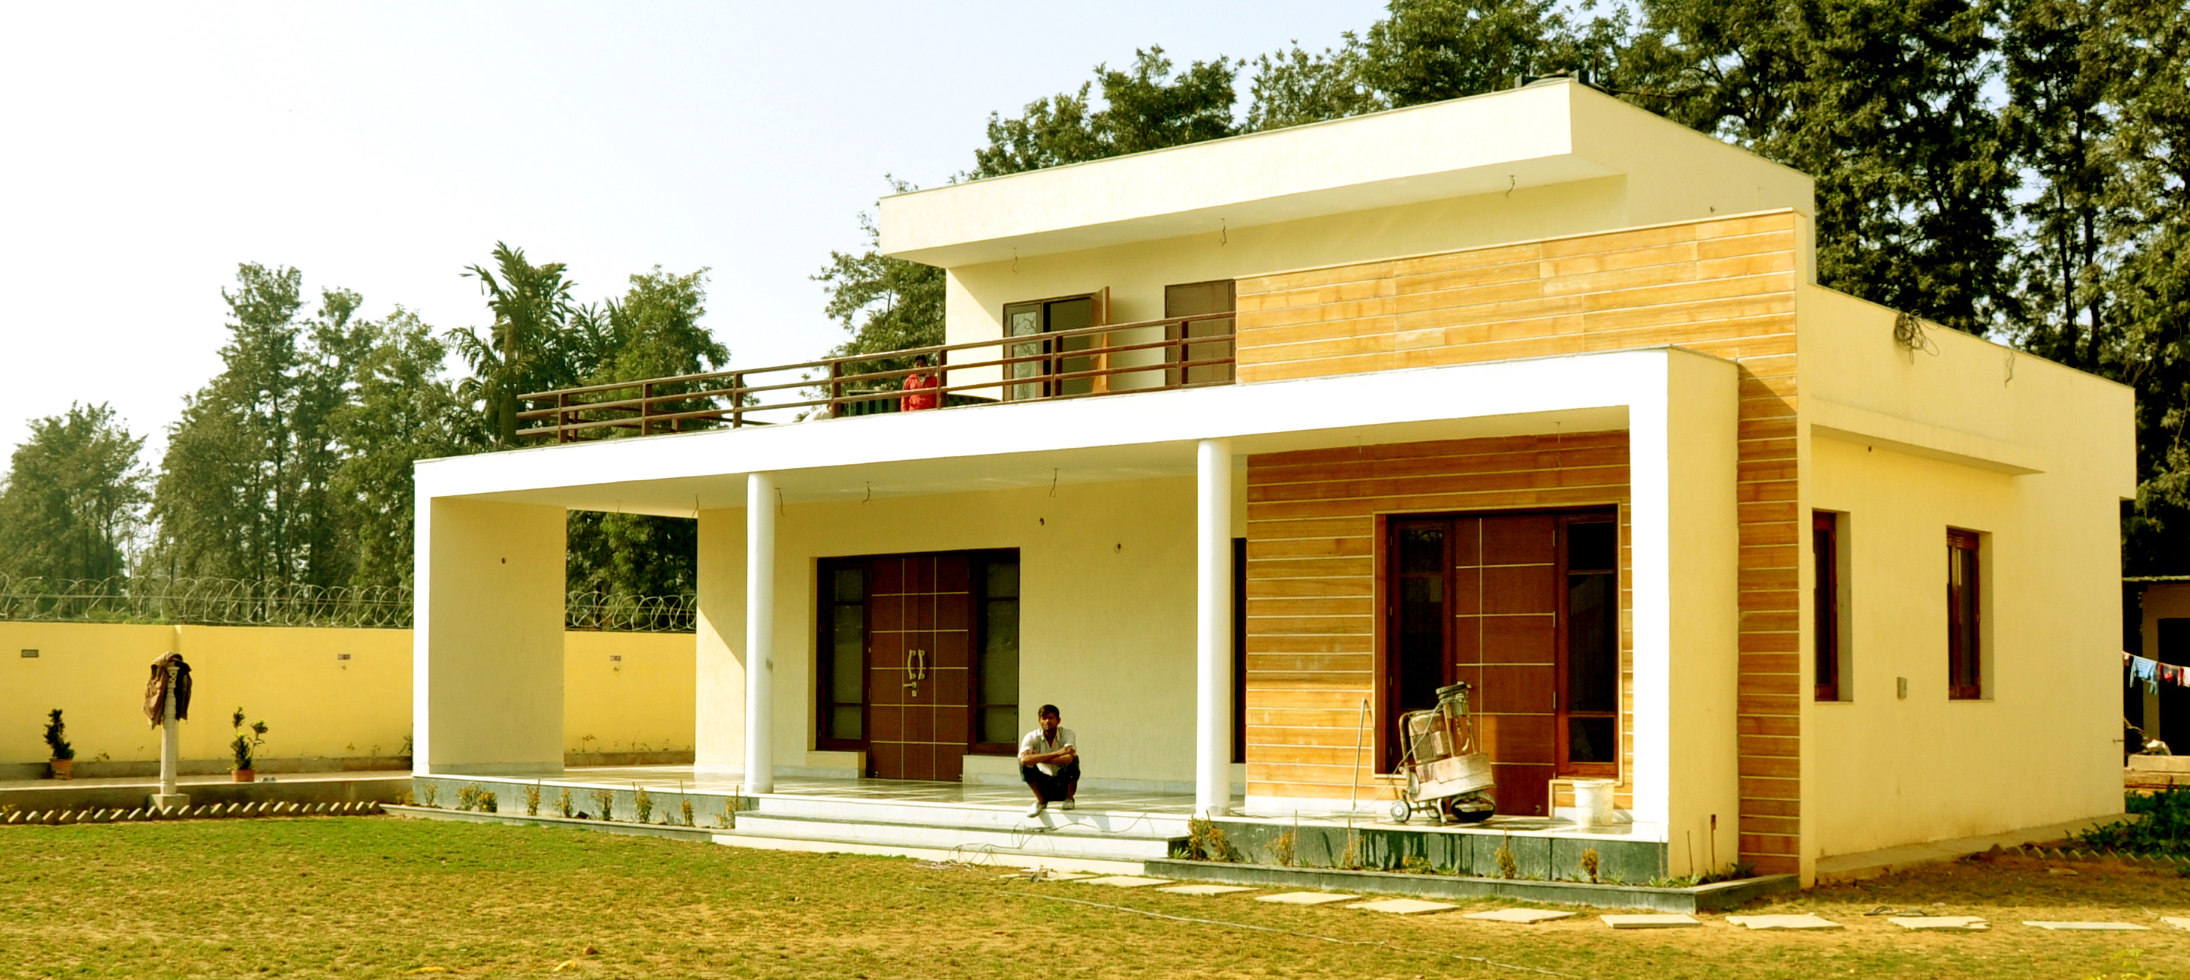 Chattarpur farm house south delhi architect magazine for Projects house